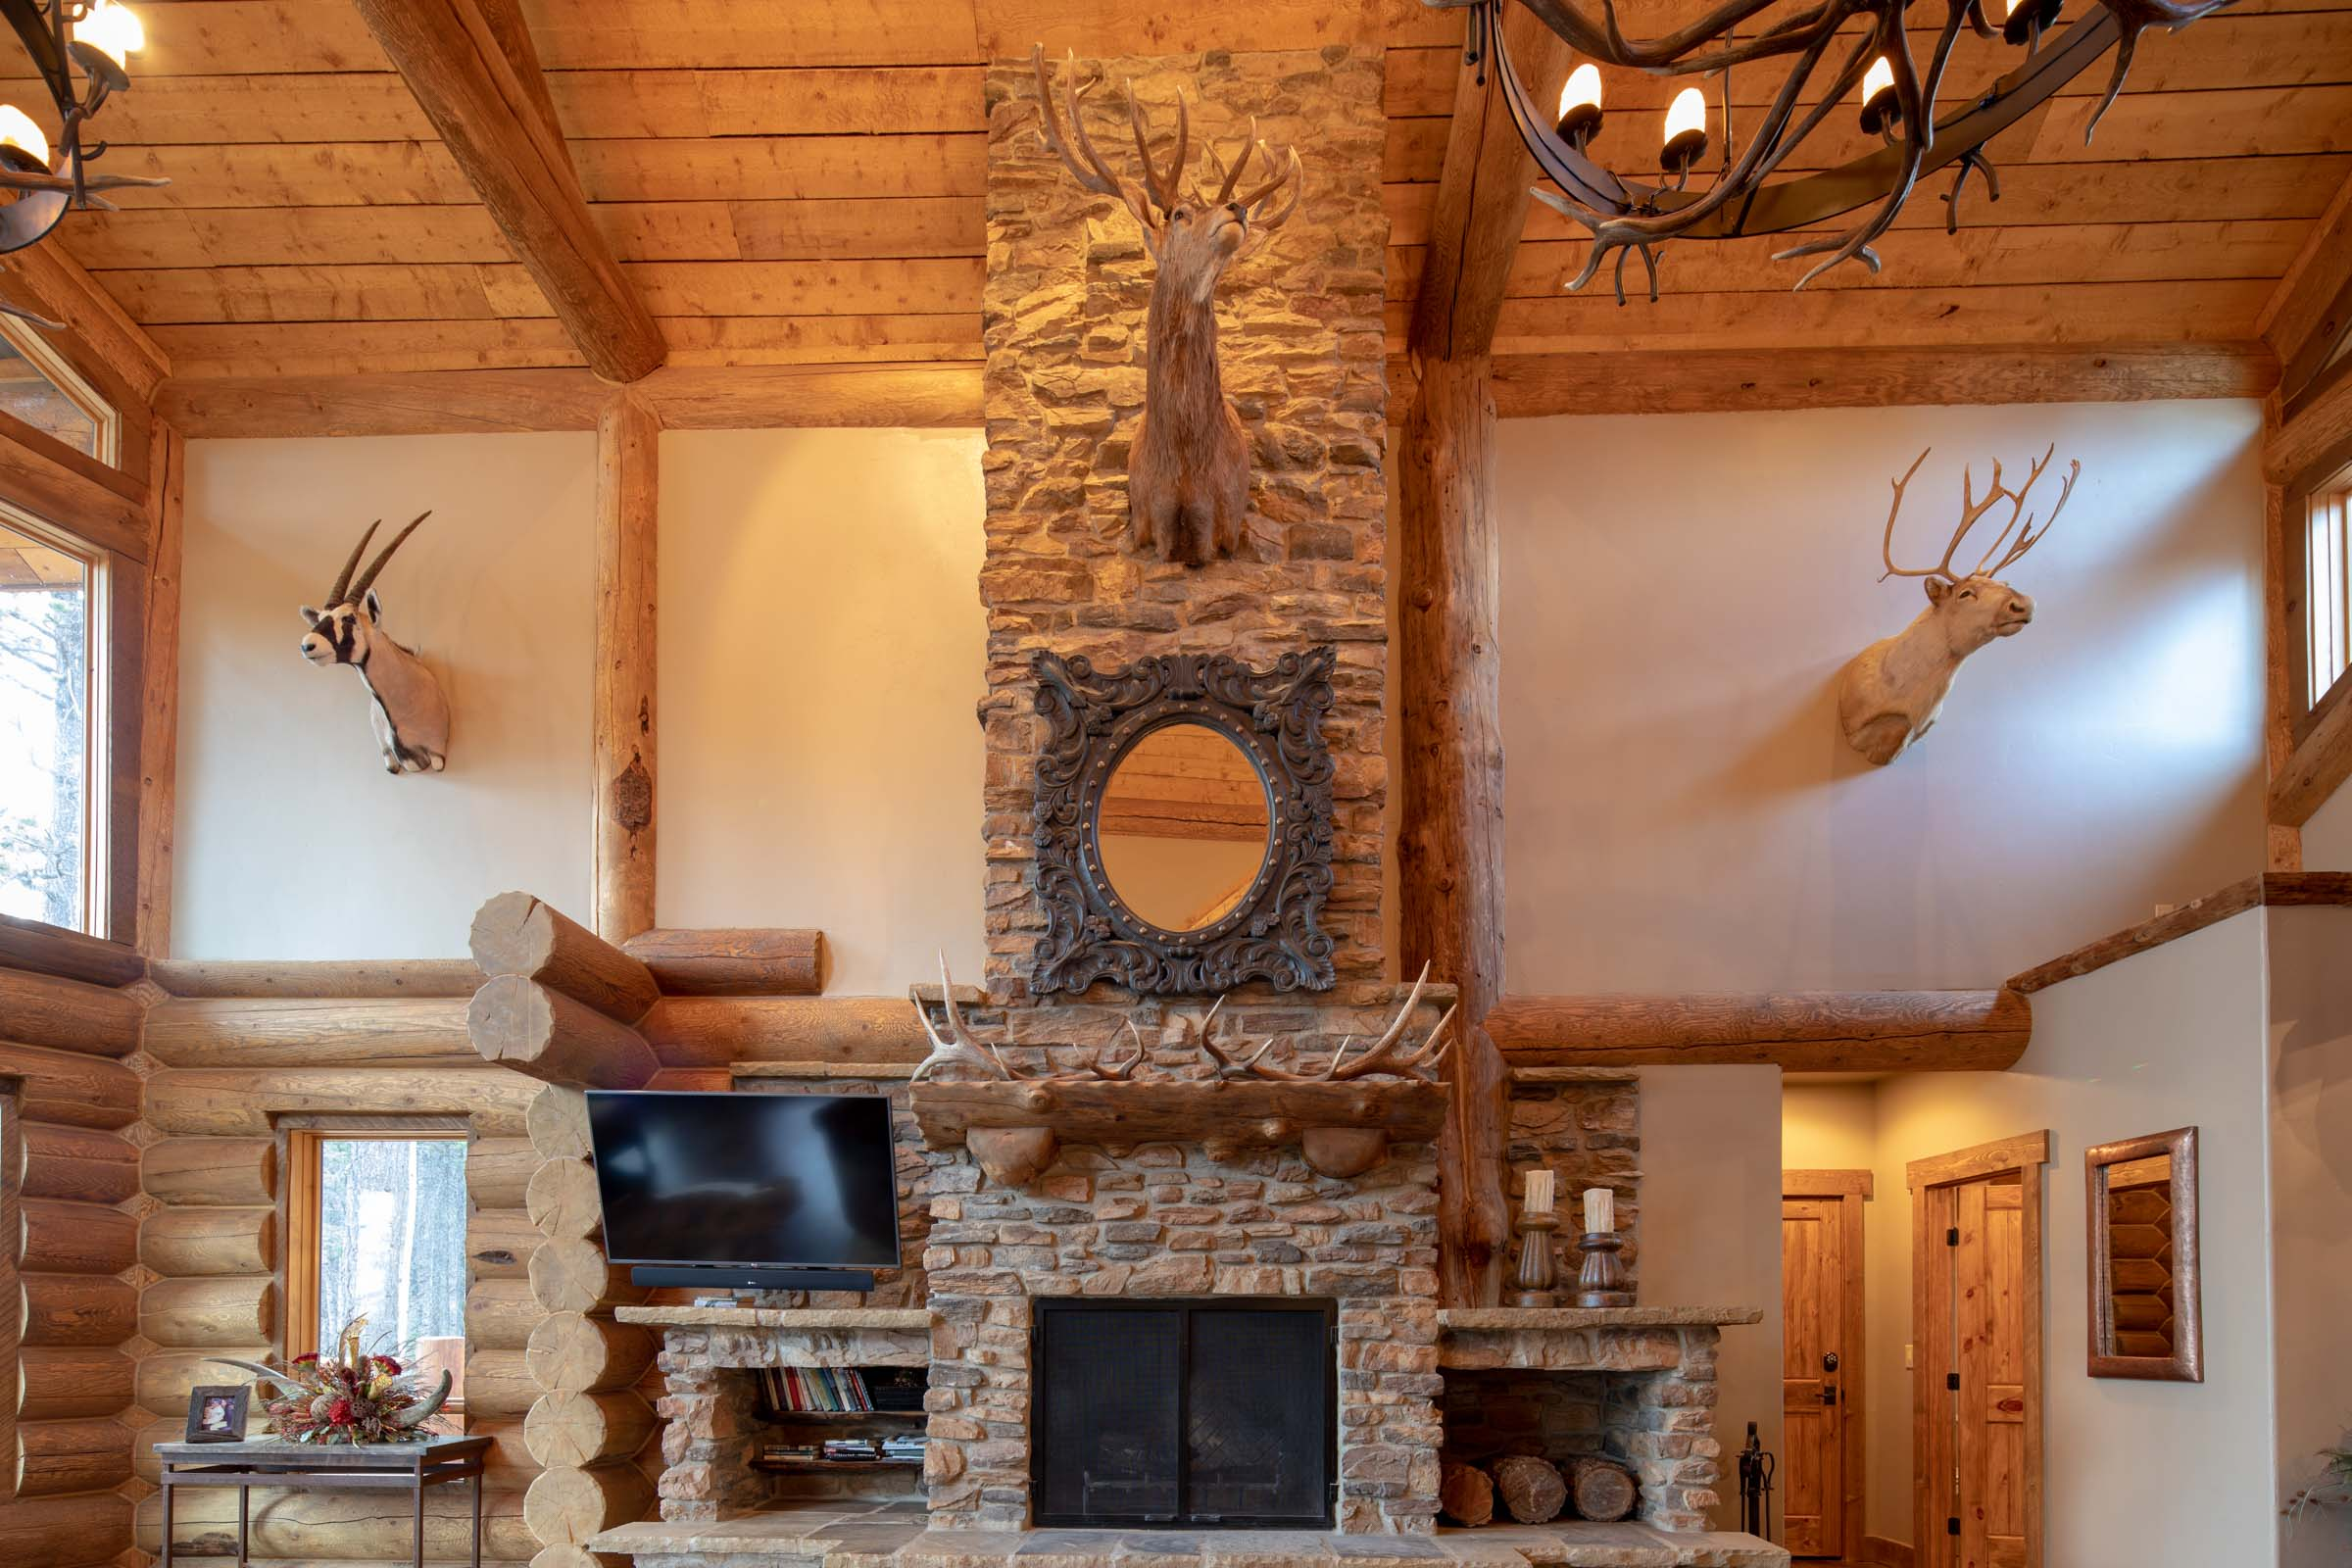 Luxury log cabin angel fire new mexico-15